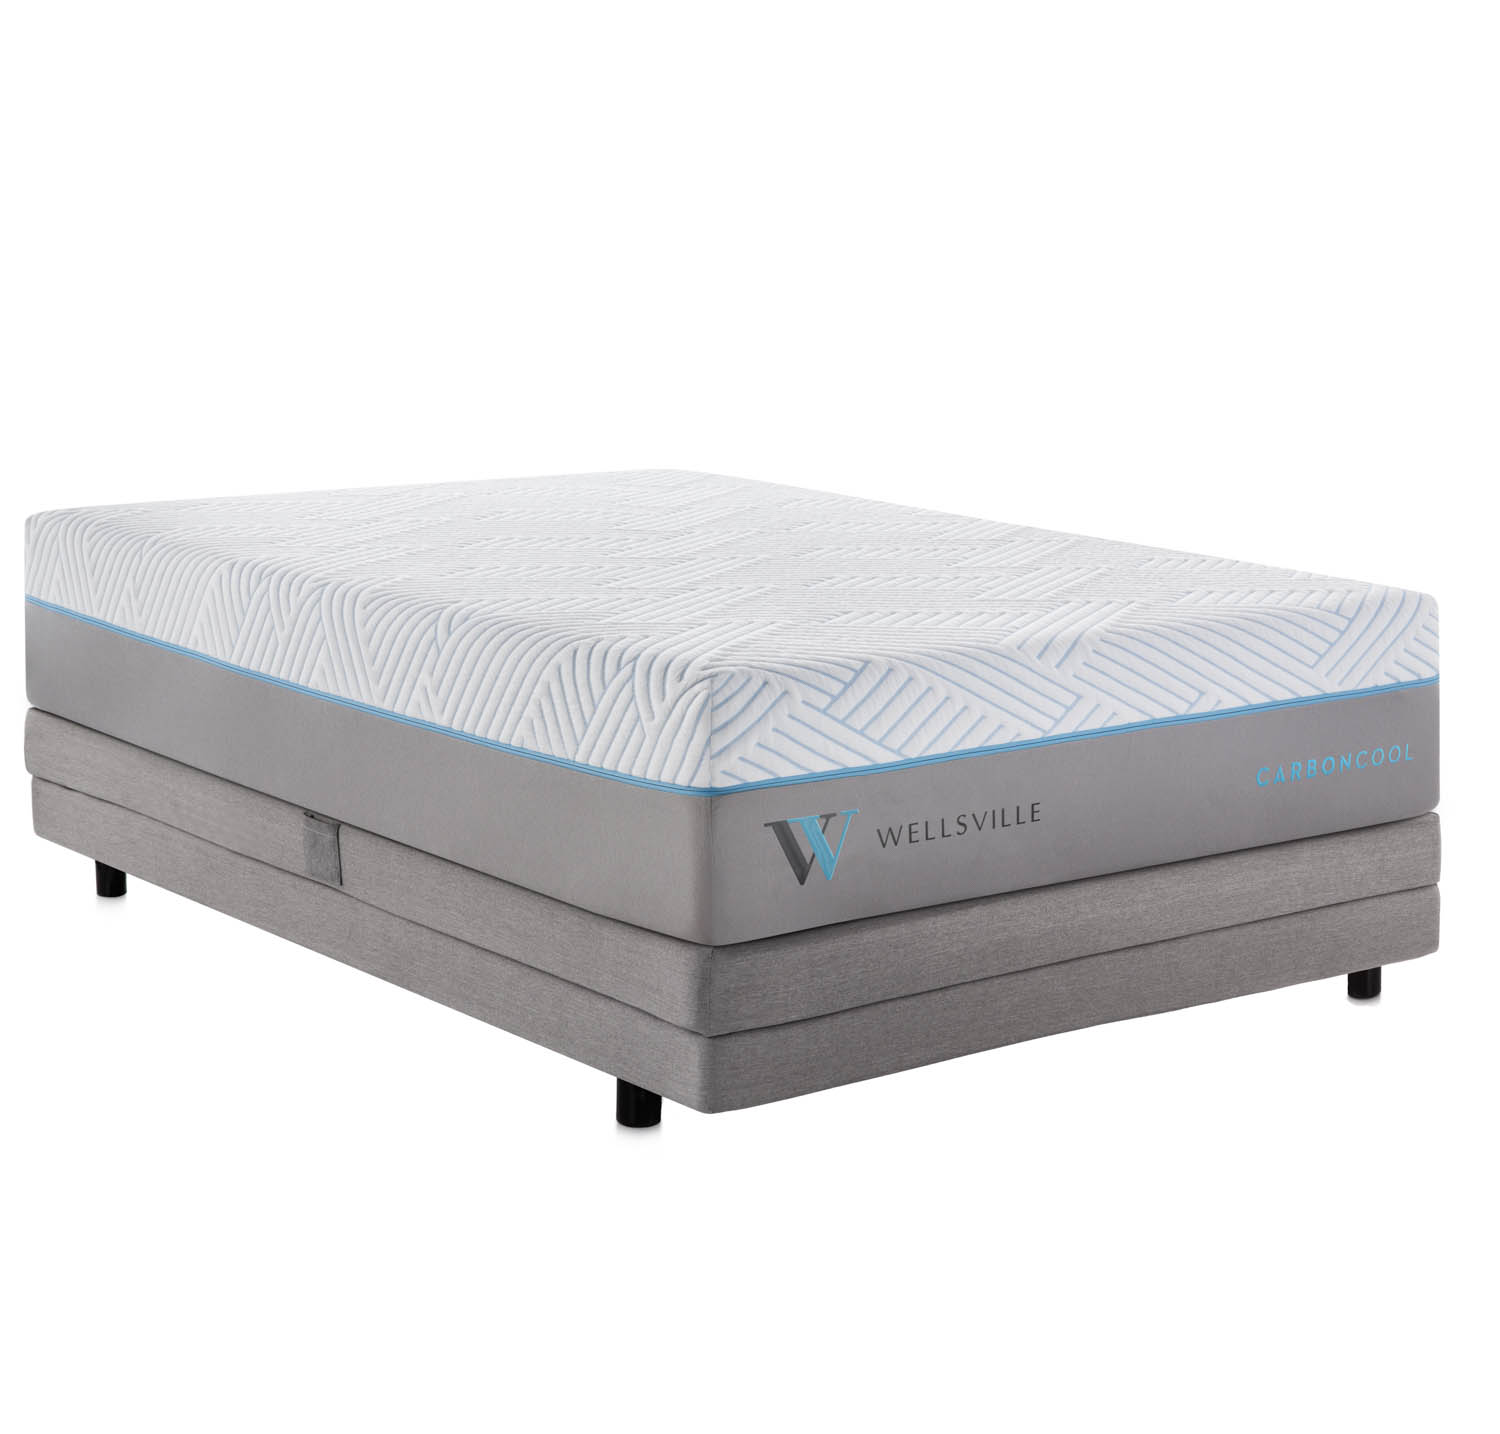 symbol premium pt mattresses series elora mattress